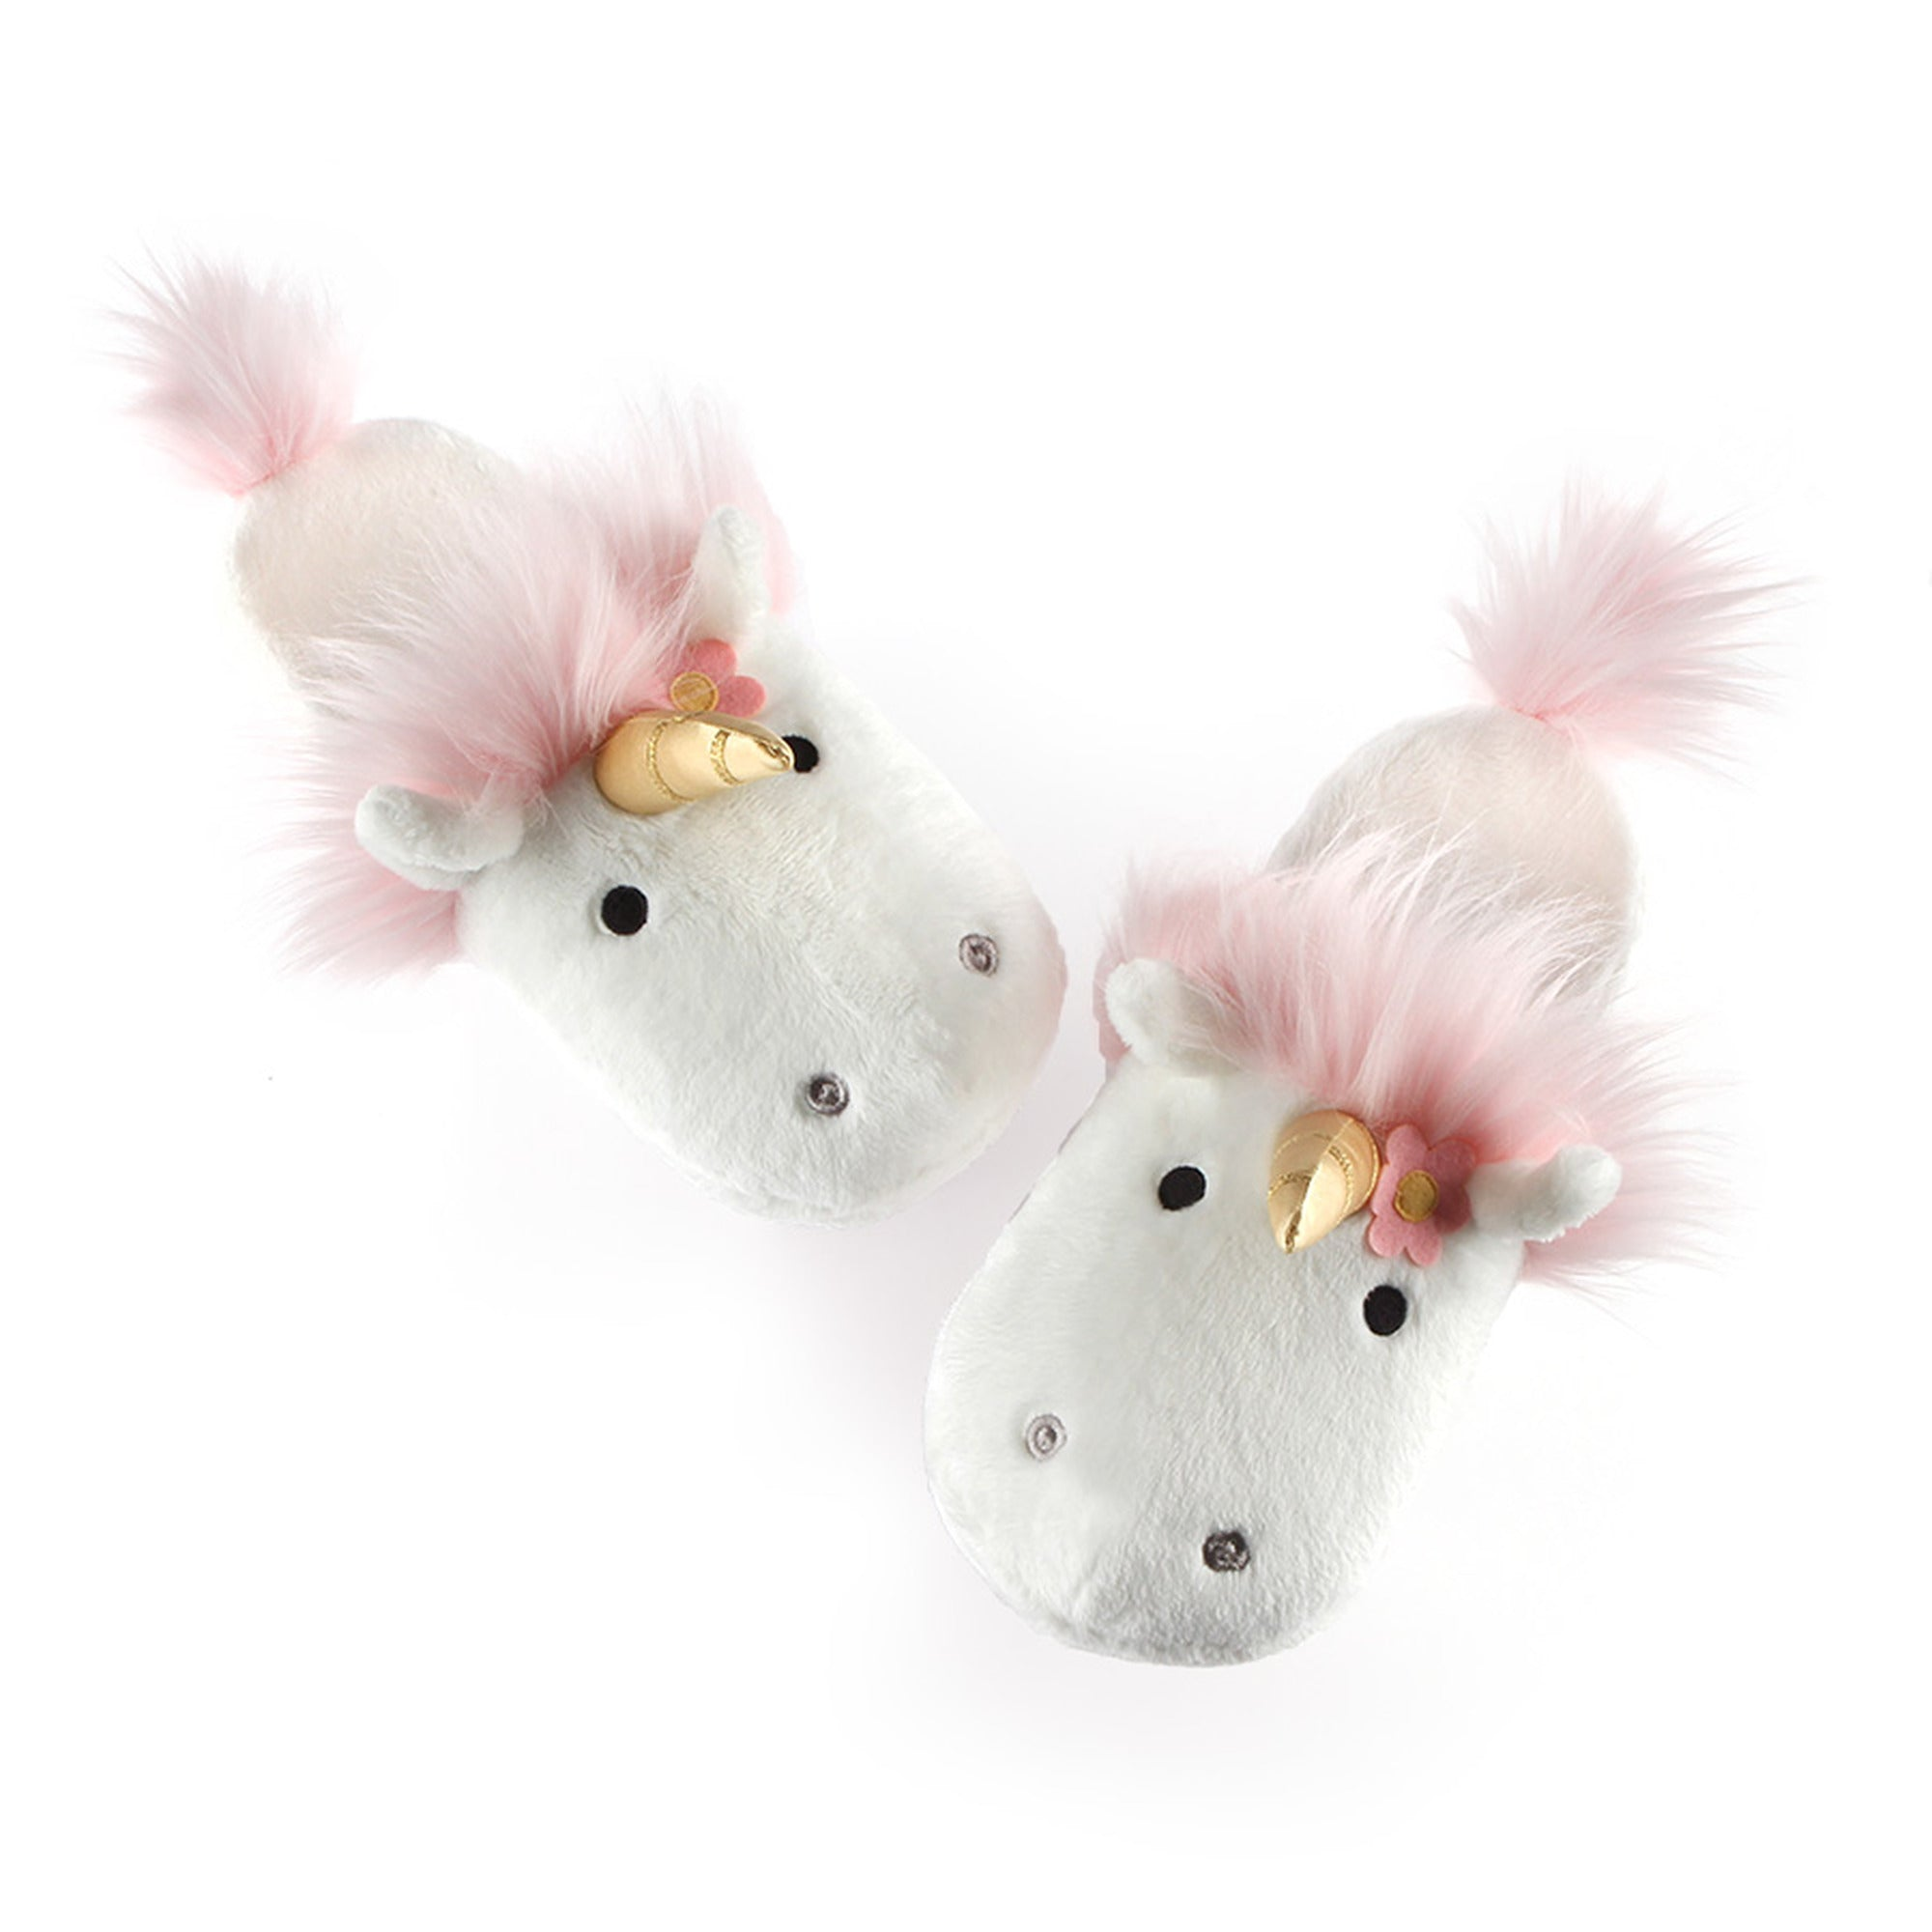 Gund - Unicorn Slippers - One Size